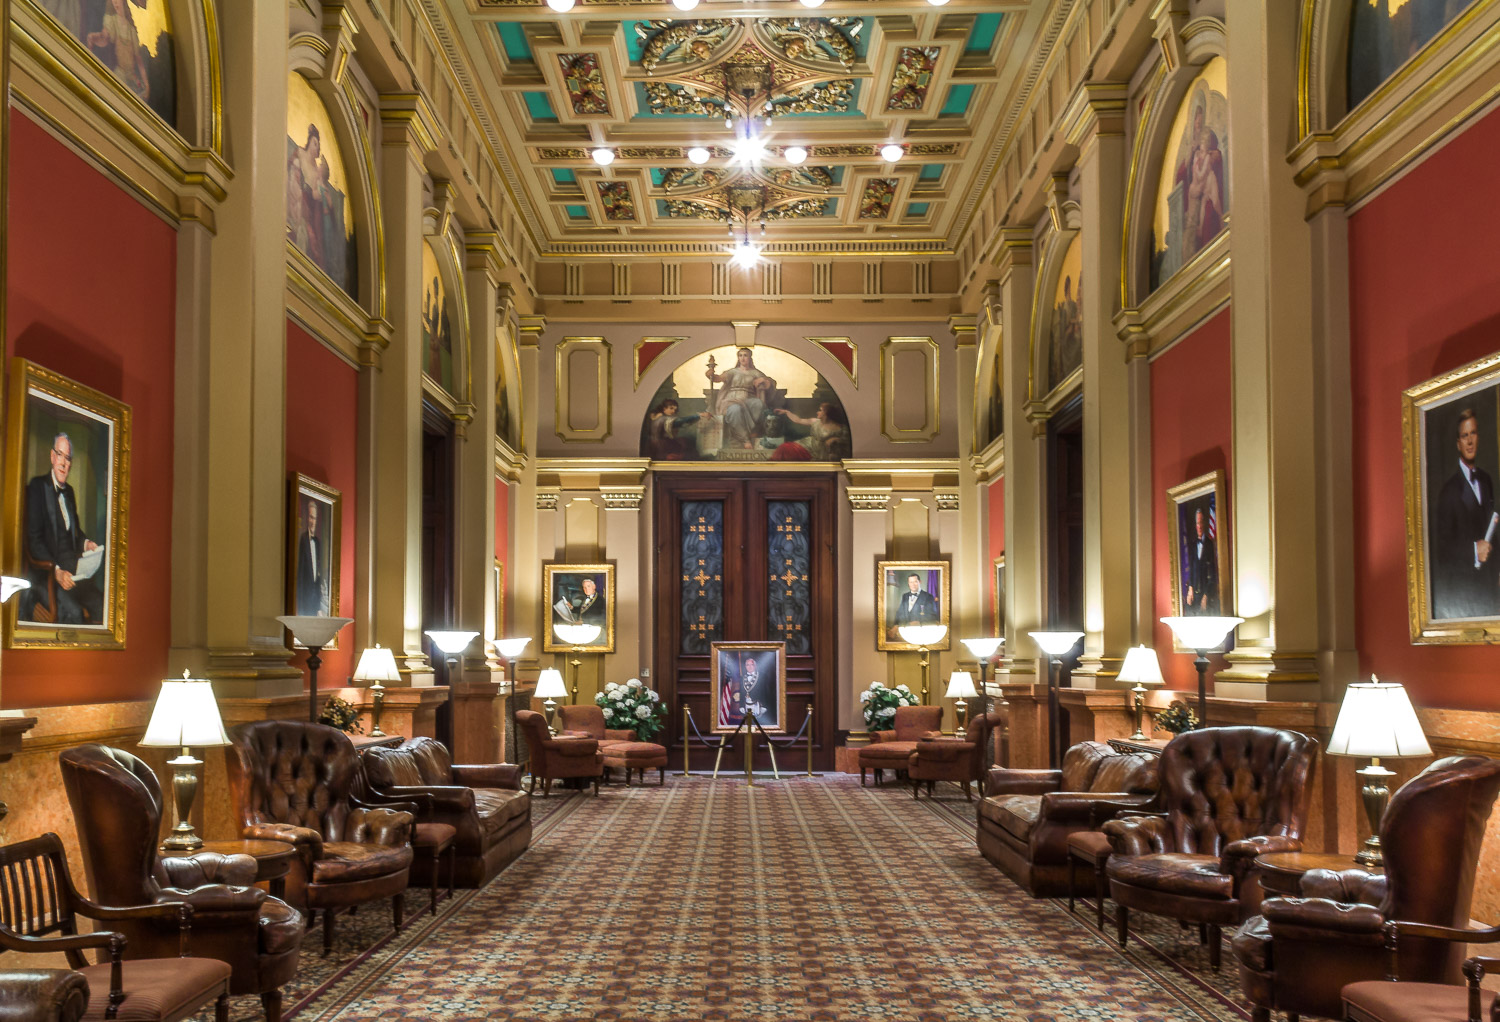 The Franklin Room at the Masonic Temple in Philadelphia, Pennsylvania